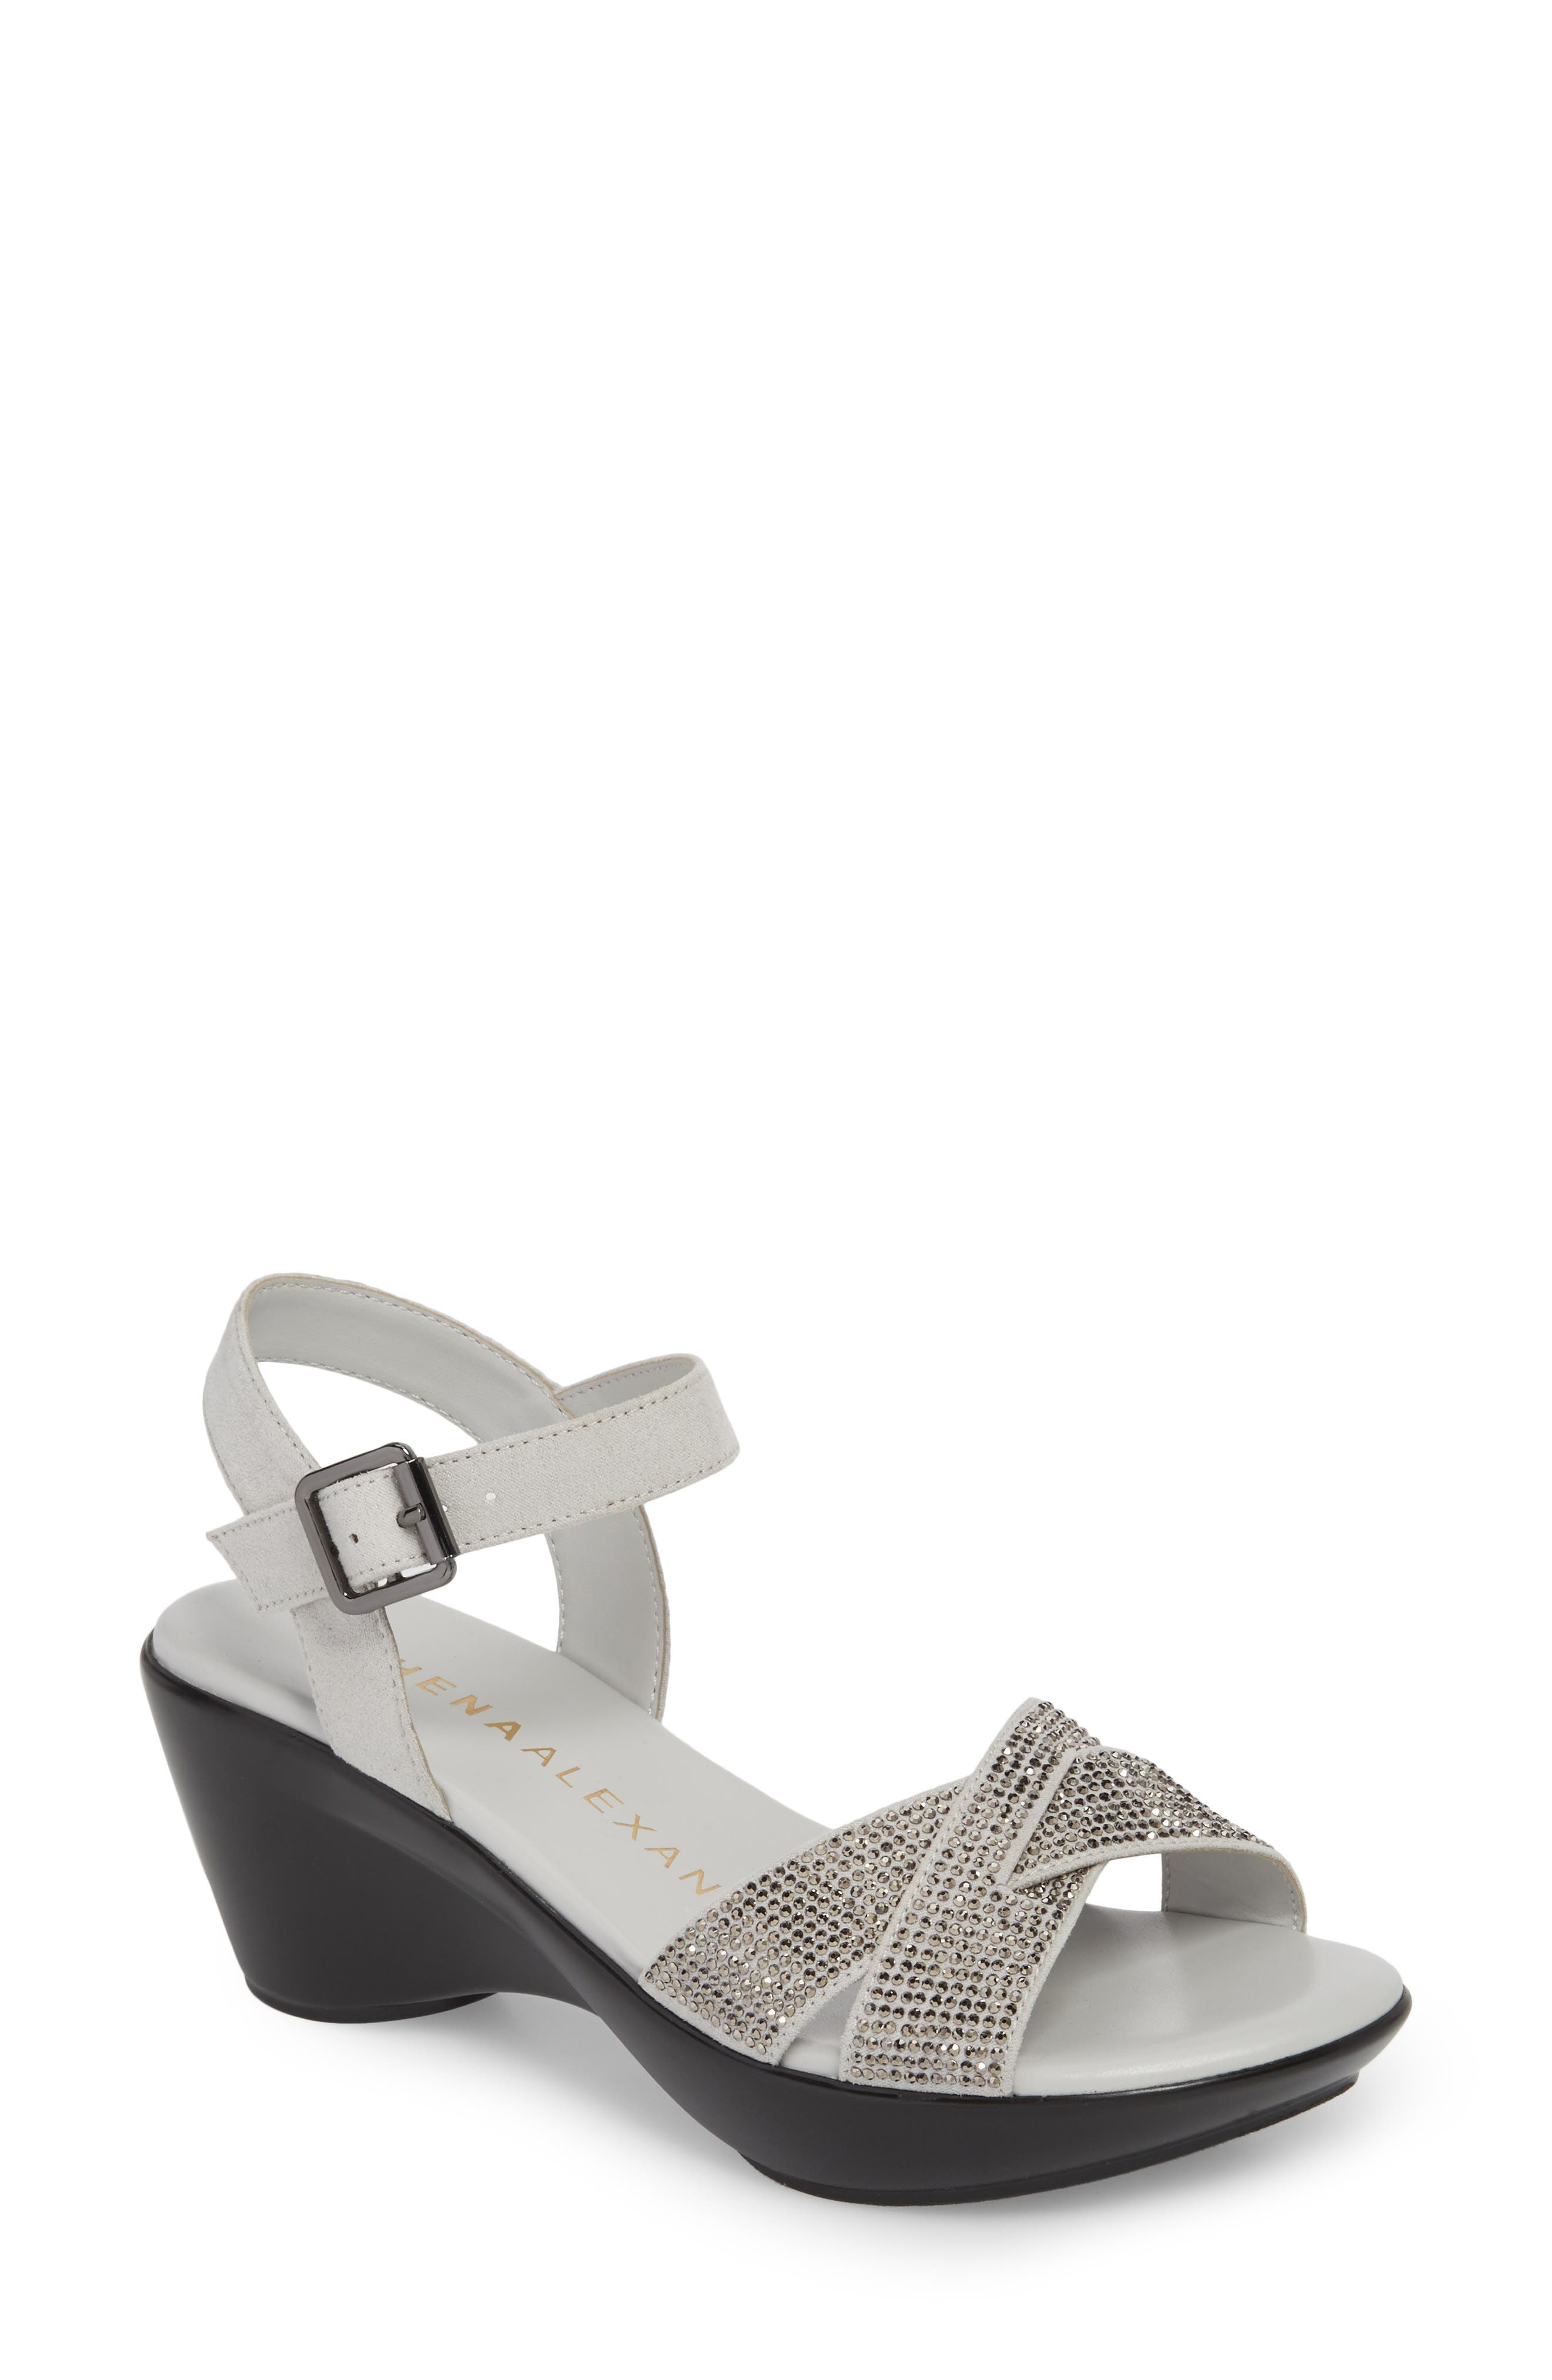 Florence Wedge Sandal,                             Main thumbnail 1, color,                             GREY FAUX SUEDE